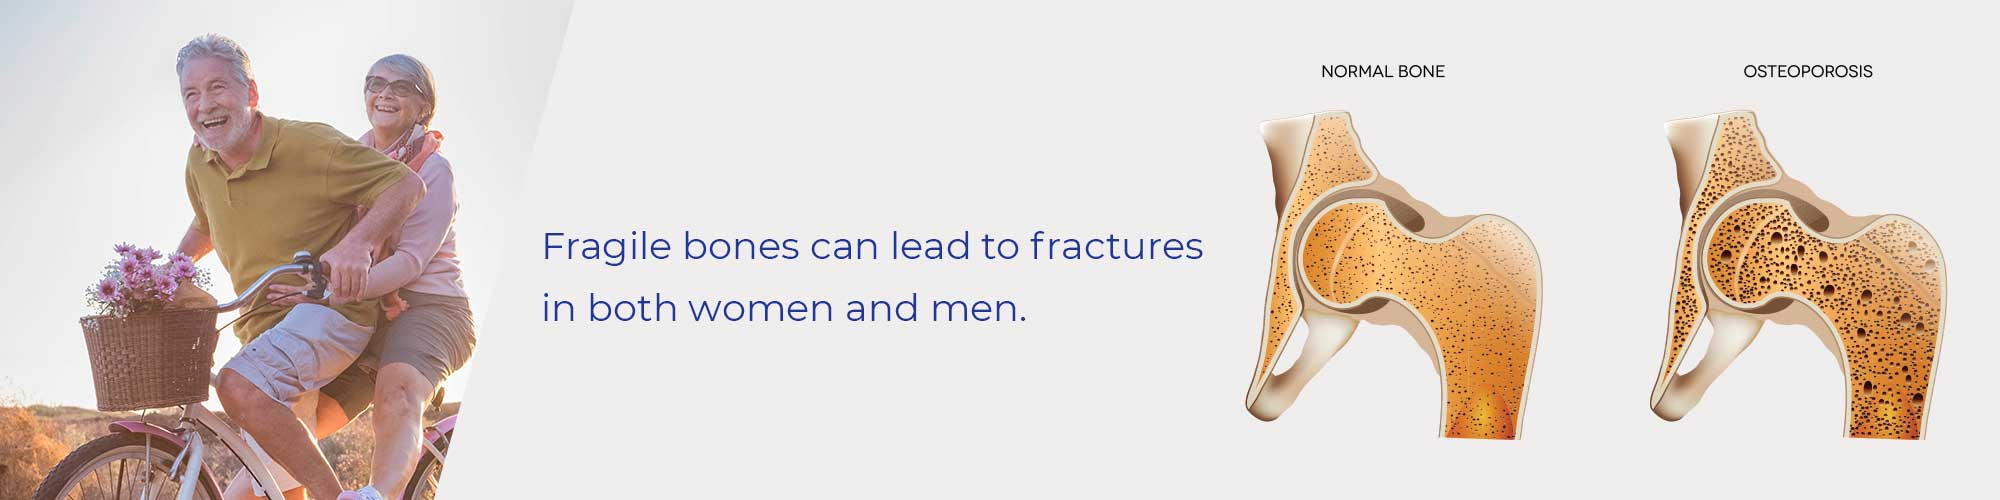 Fragile bones can lead to fractures in both women and men.